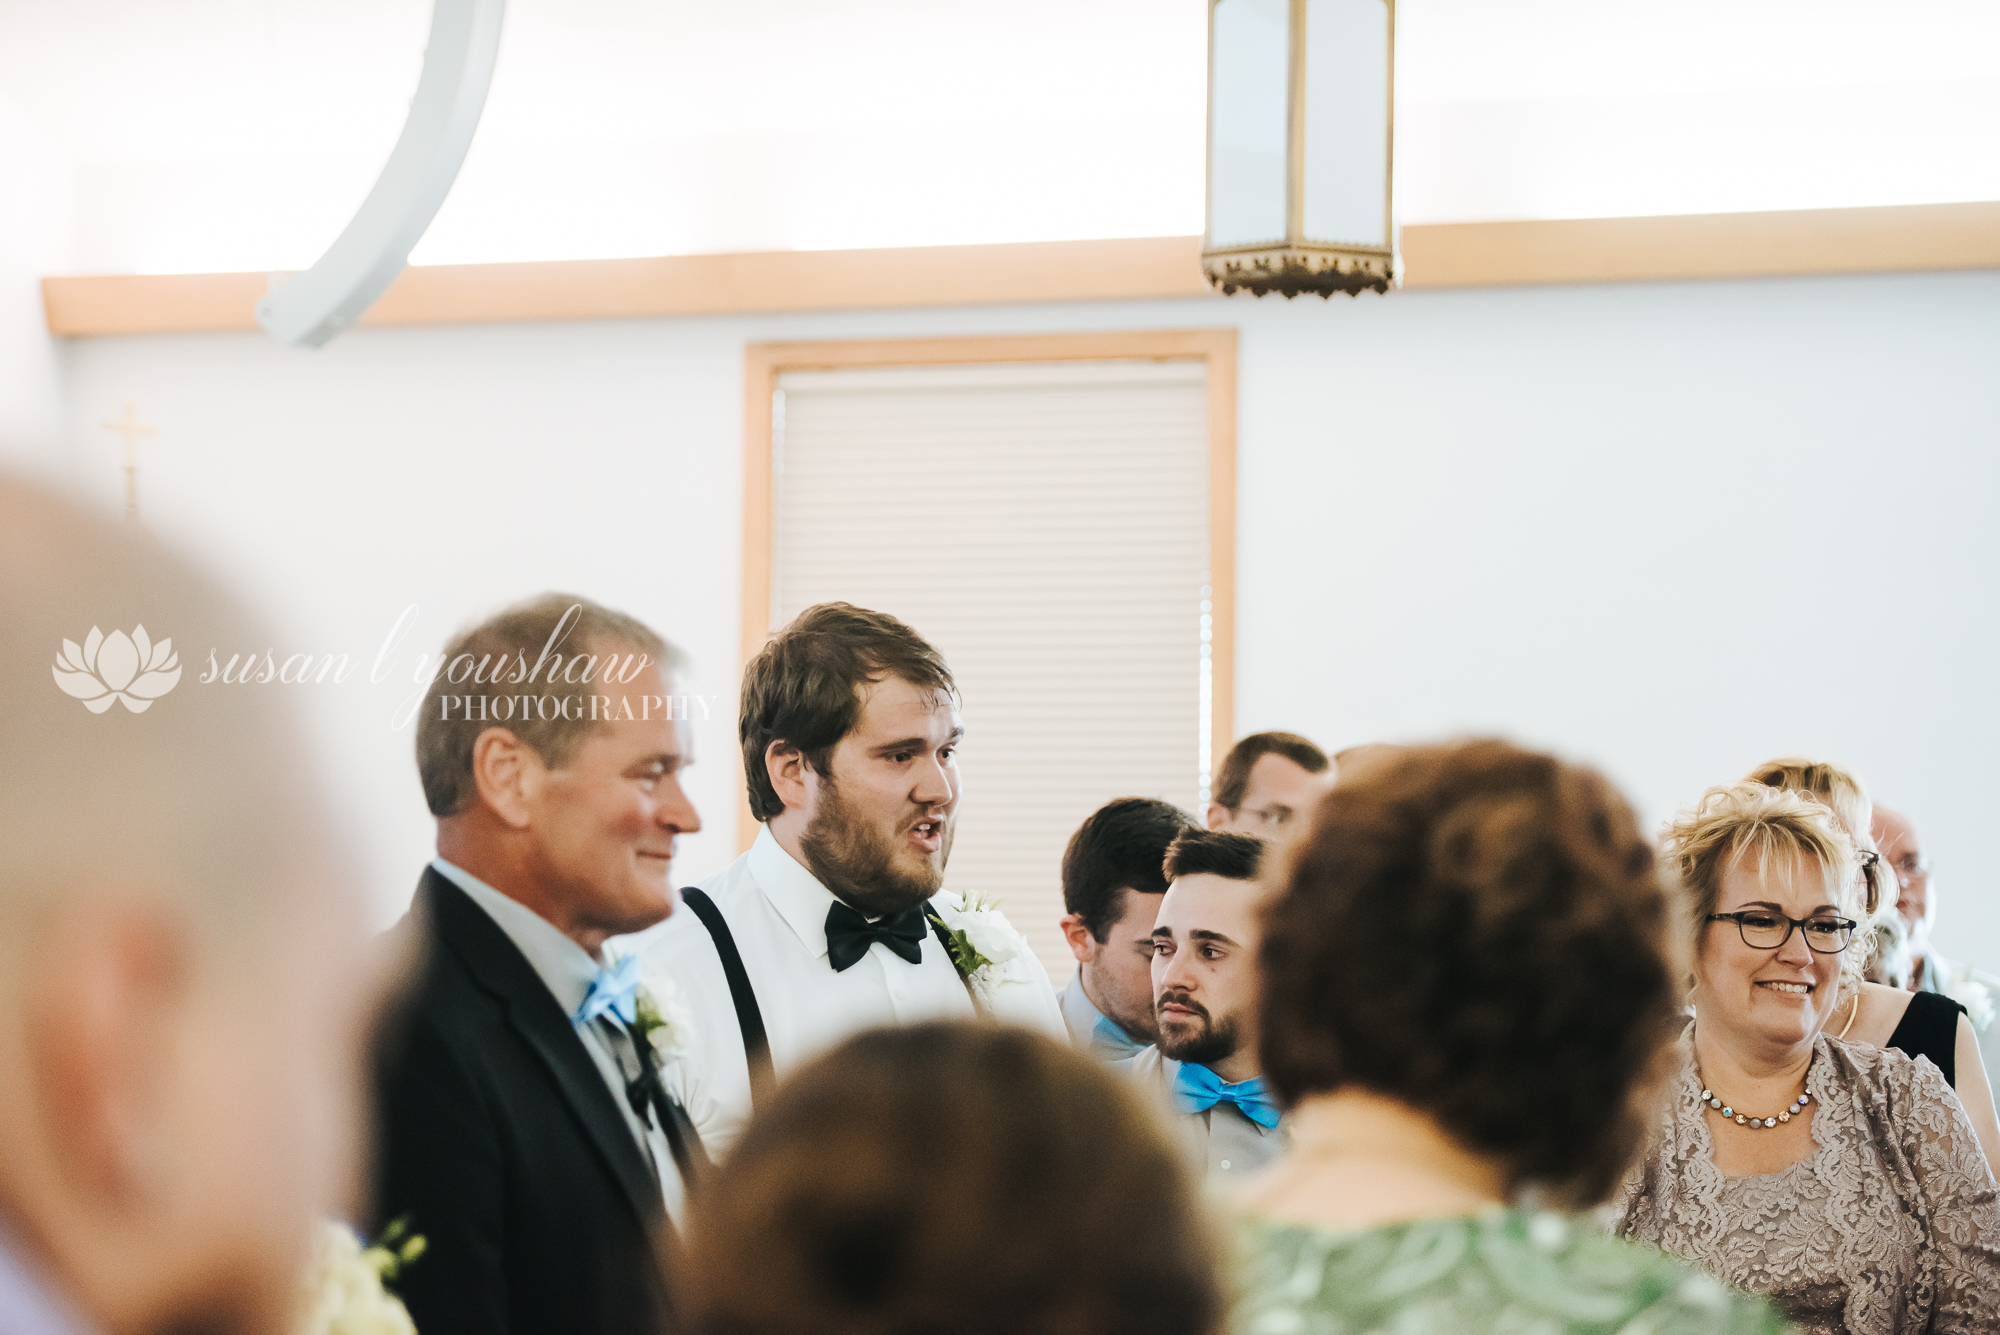 Katelyn and Wes Wedding Photos 07-13-2019 SLY Photography-56.jpg